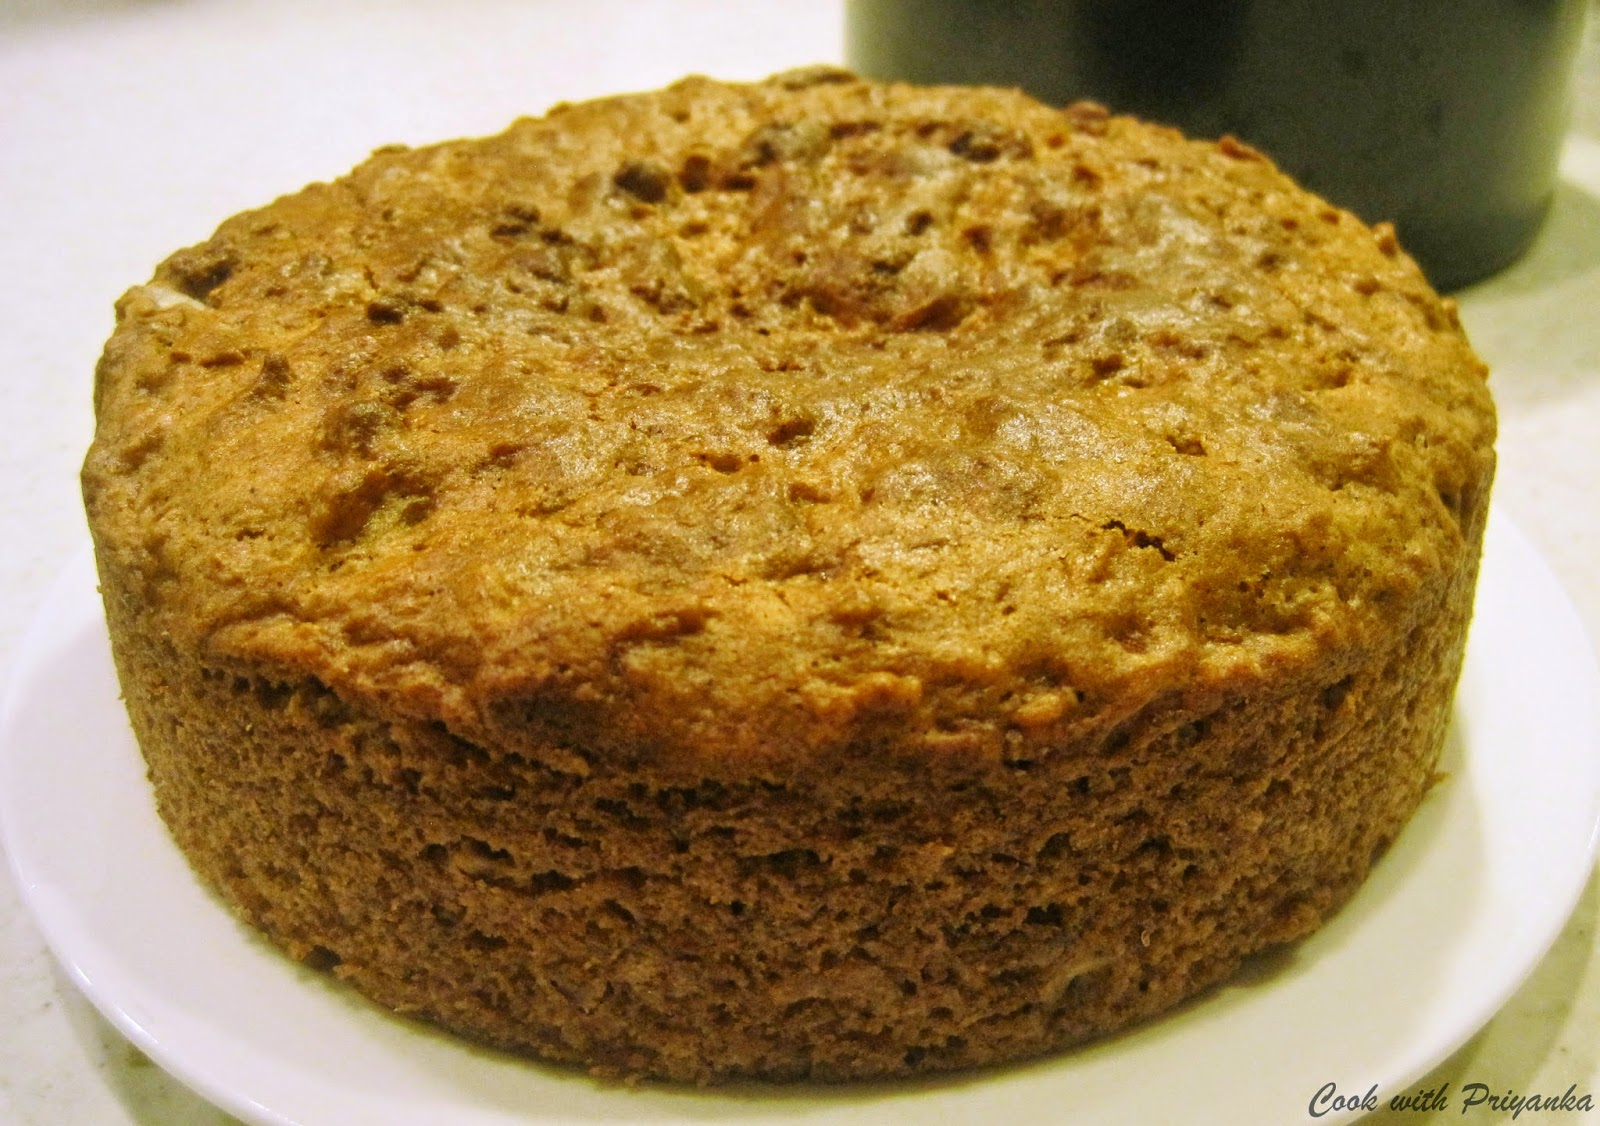 http://cookwithpriyankavarma.blogspot.co.uk/2014/04/eggless-spiced-apple-cake.html